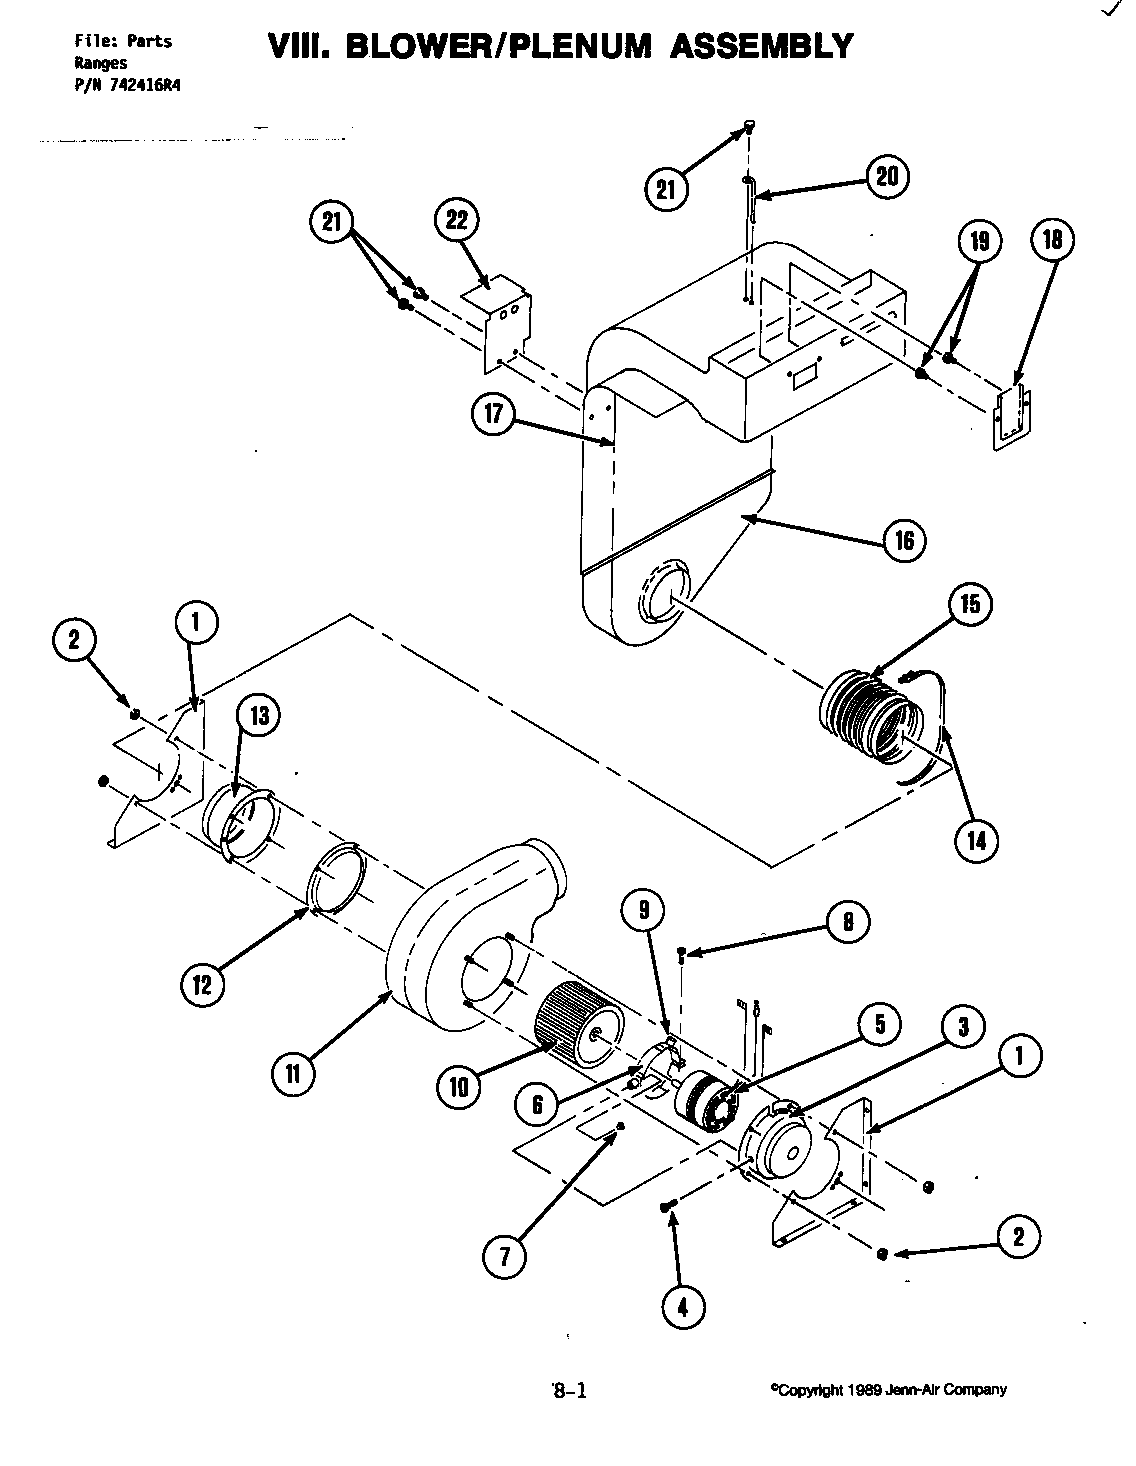 range receptacle wiring diagram range discover your wiring frigidaire cooktop stove replacement parts